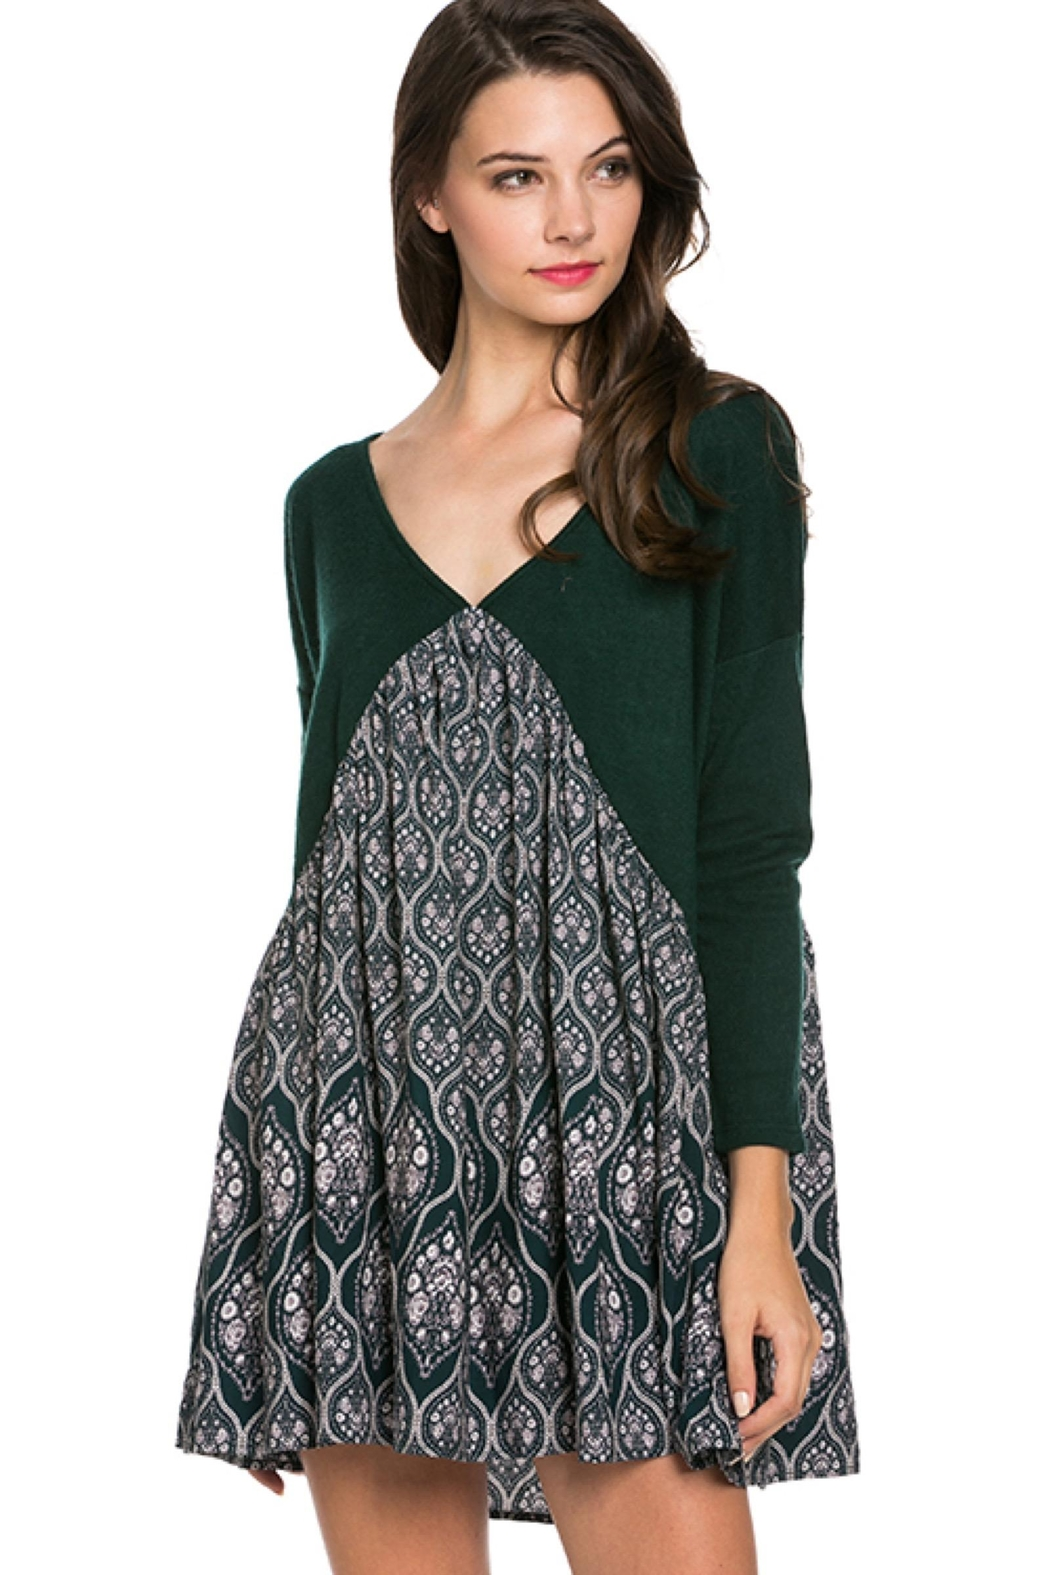 People Outfitter Dark Green Tunic Dress - Main Image